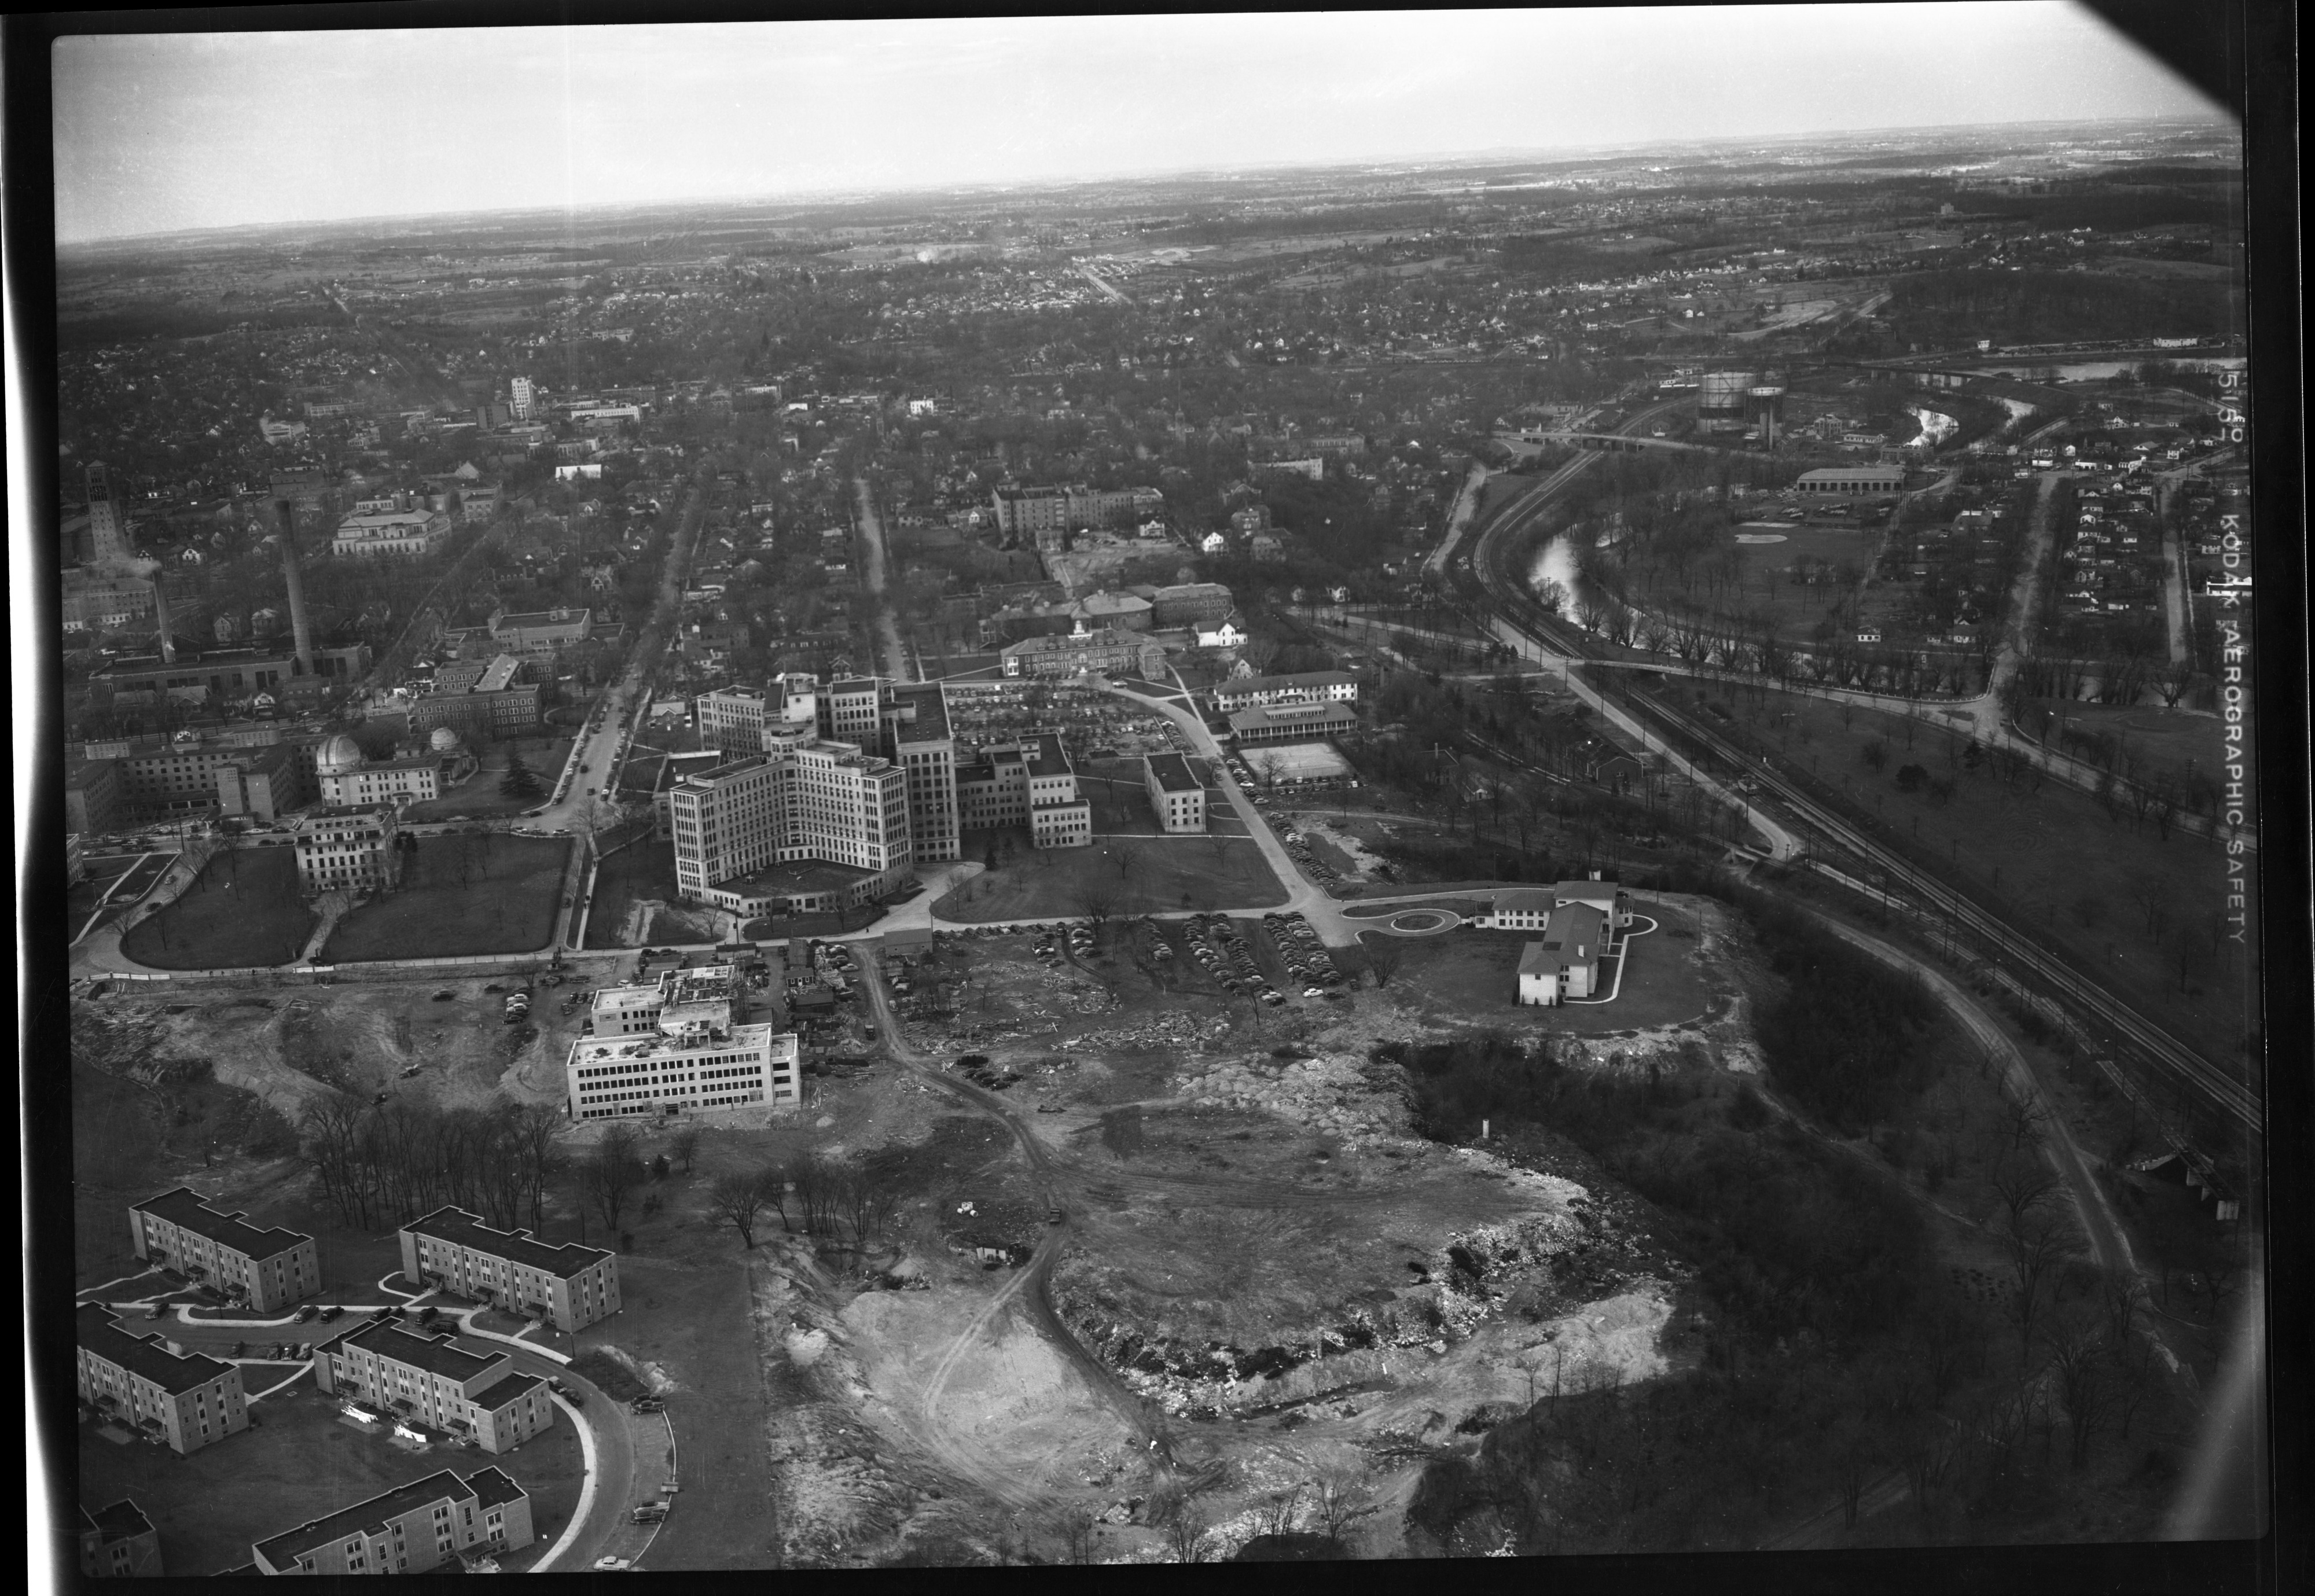 University of Michigan Medical Area and Terrace, September 1949 image